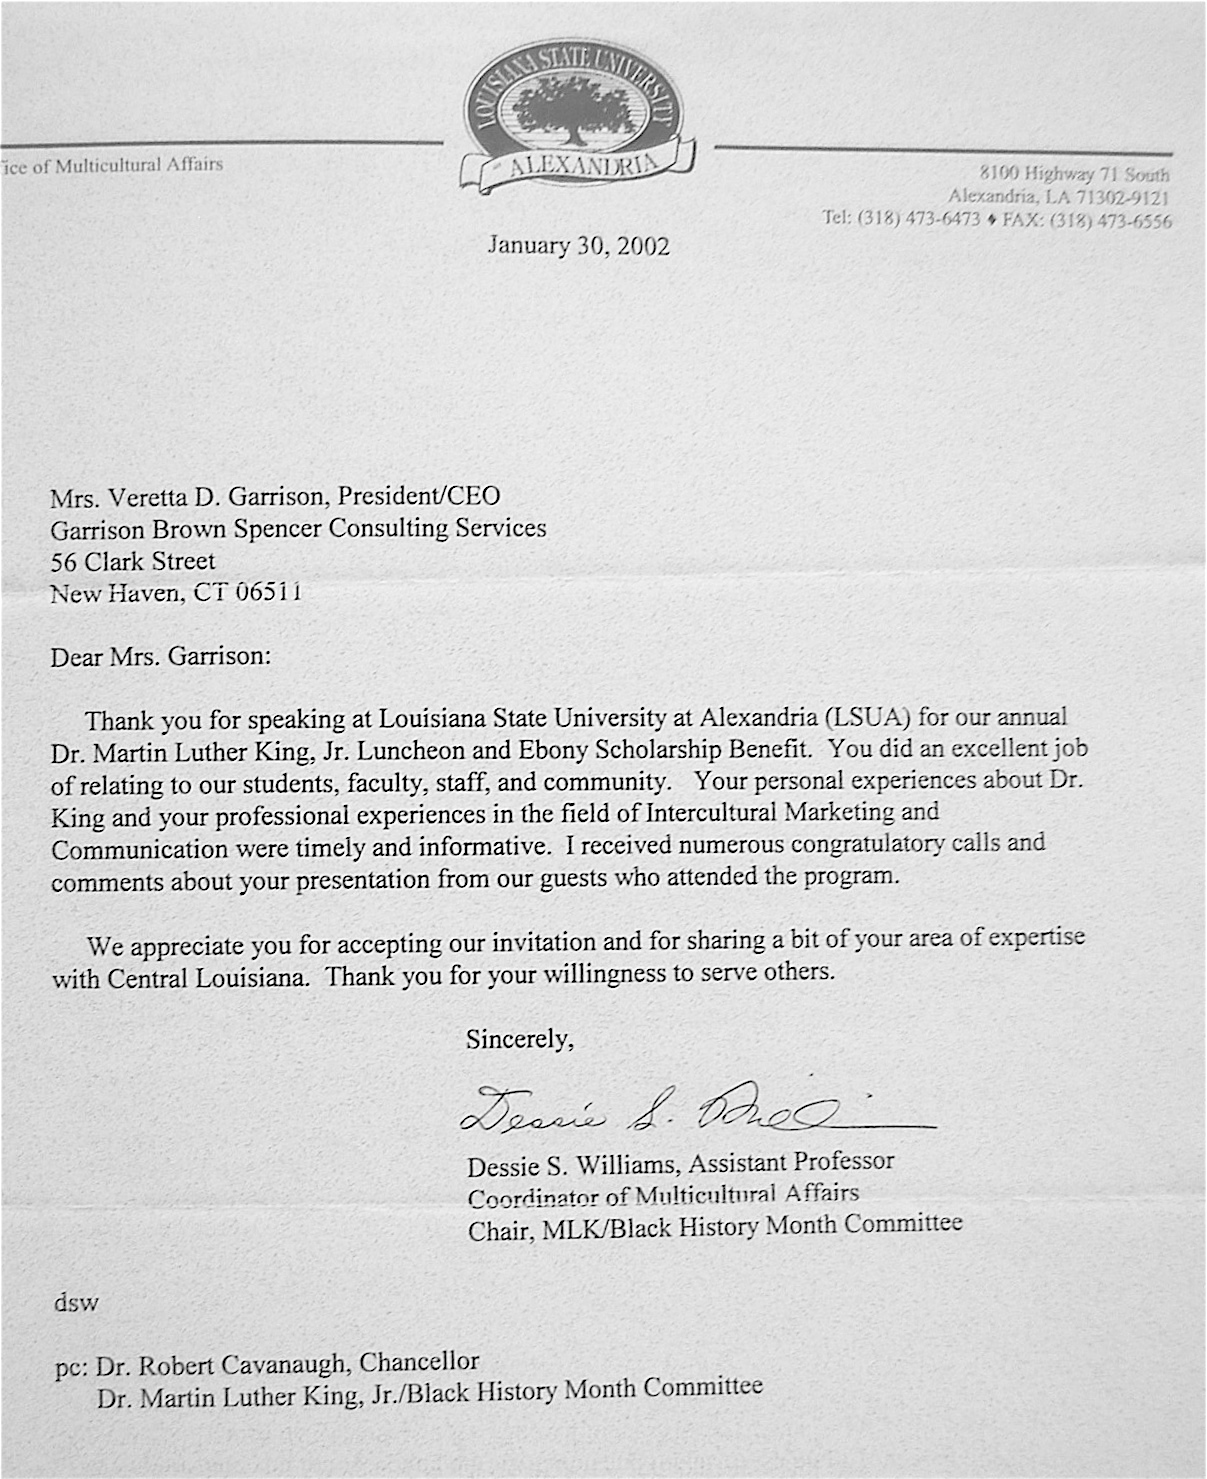 Application essays college admissions letter thank you accepting english lesson making accepting declining an invitation in english slideshare english lesson making accepting declining an invitation in english slideshare stopboris Image collections